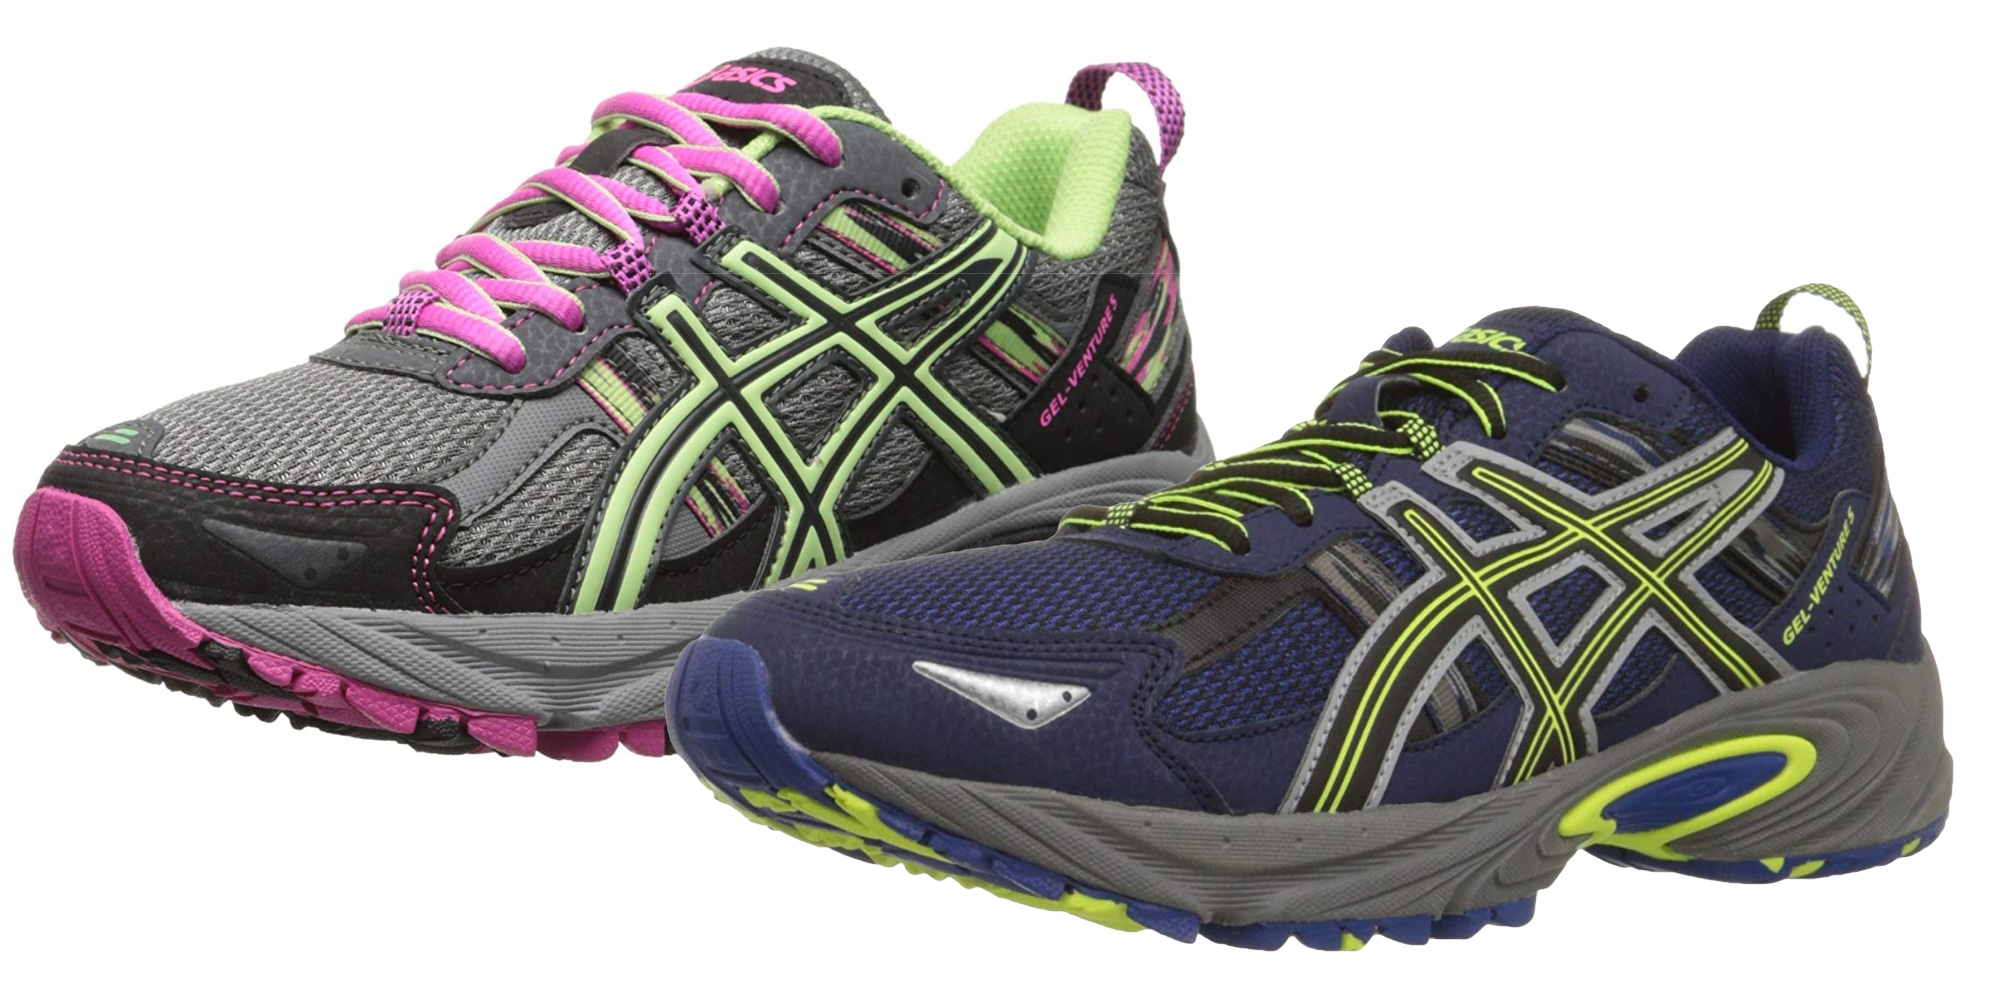 Gel Running Shoes drop to $48 at Amazon